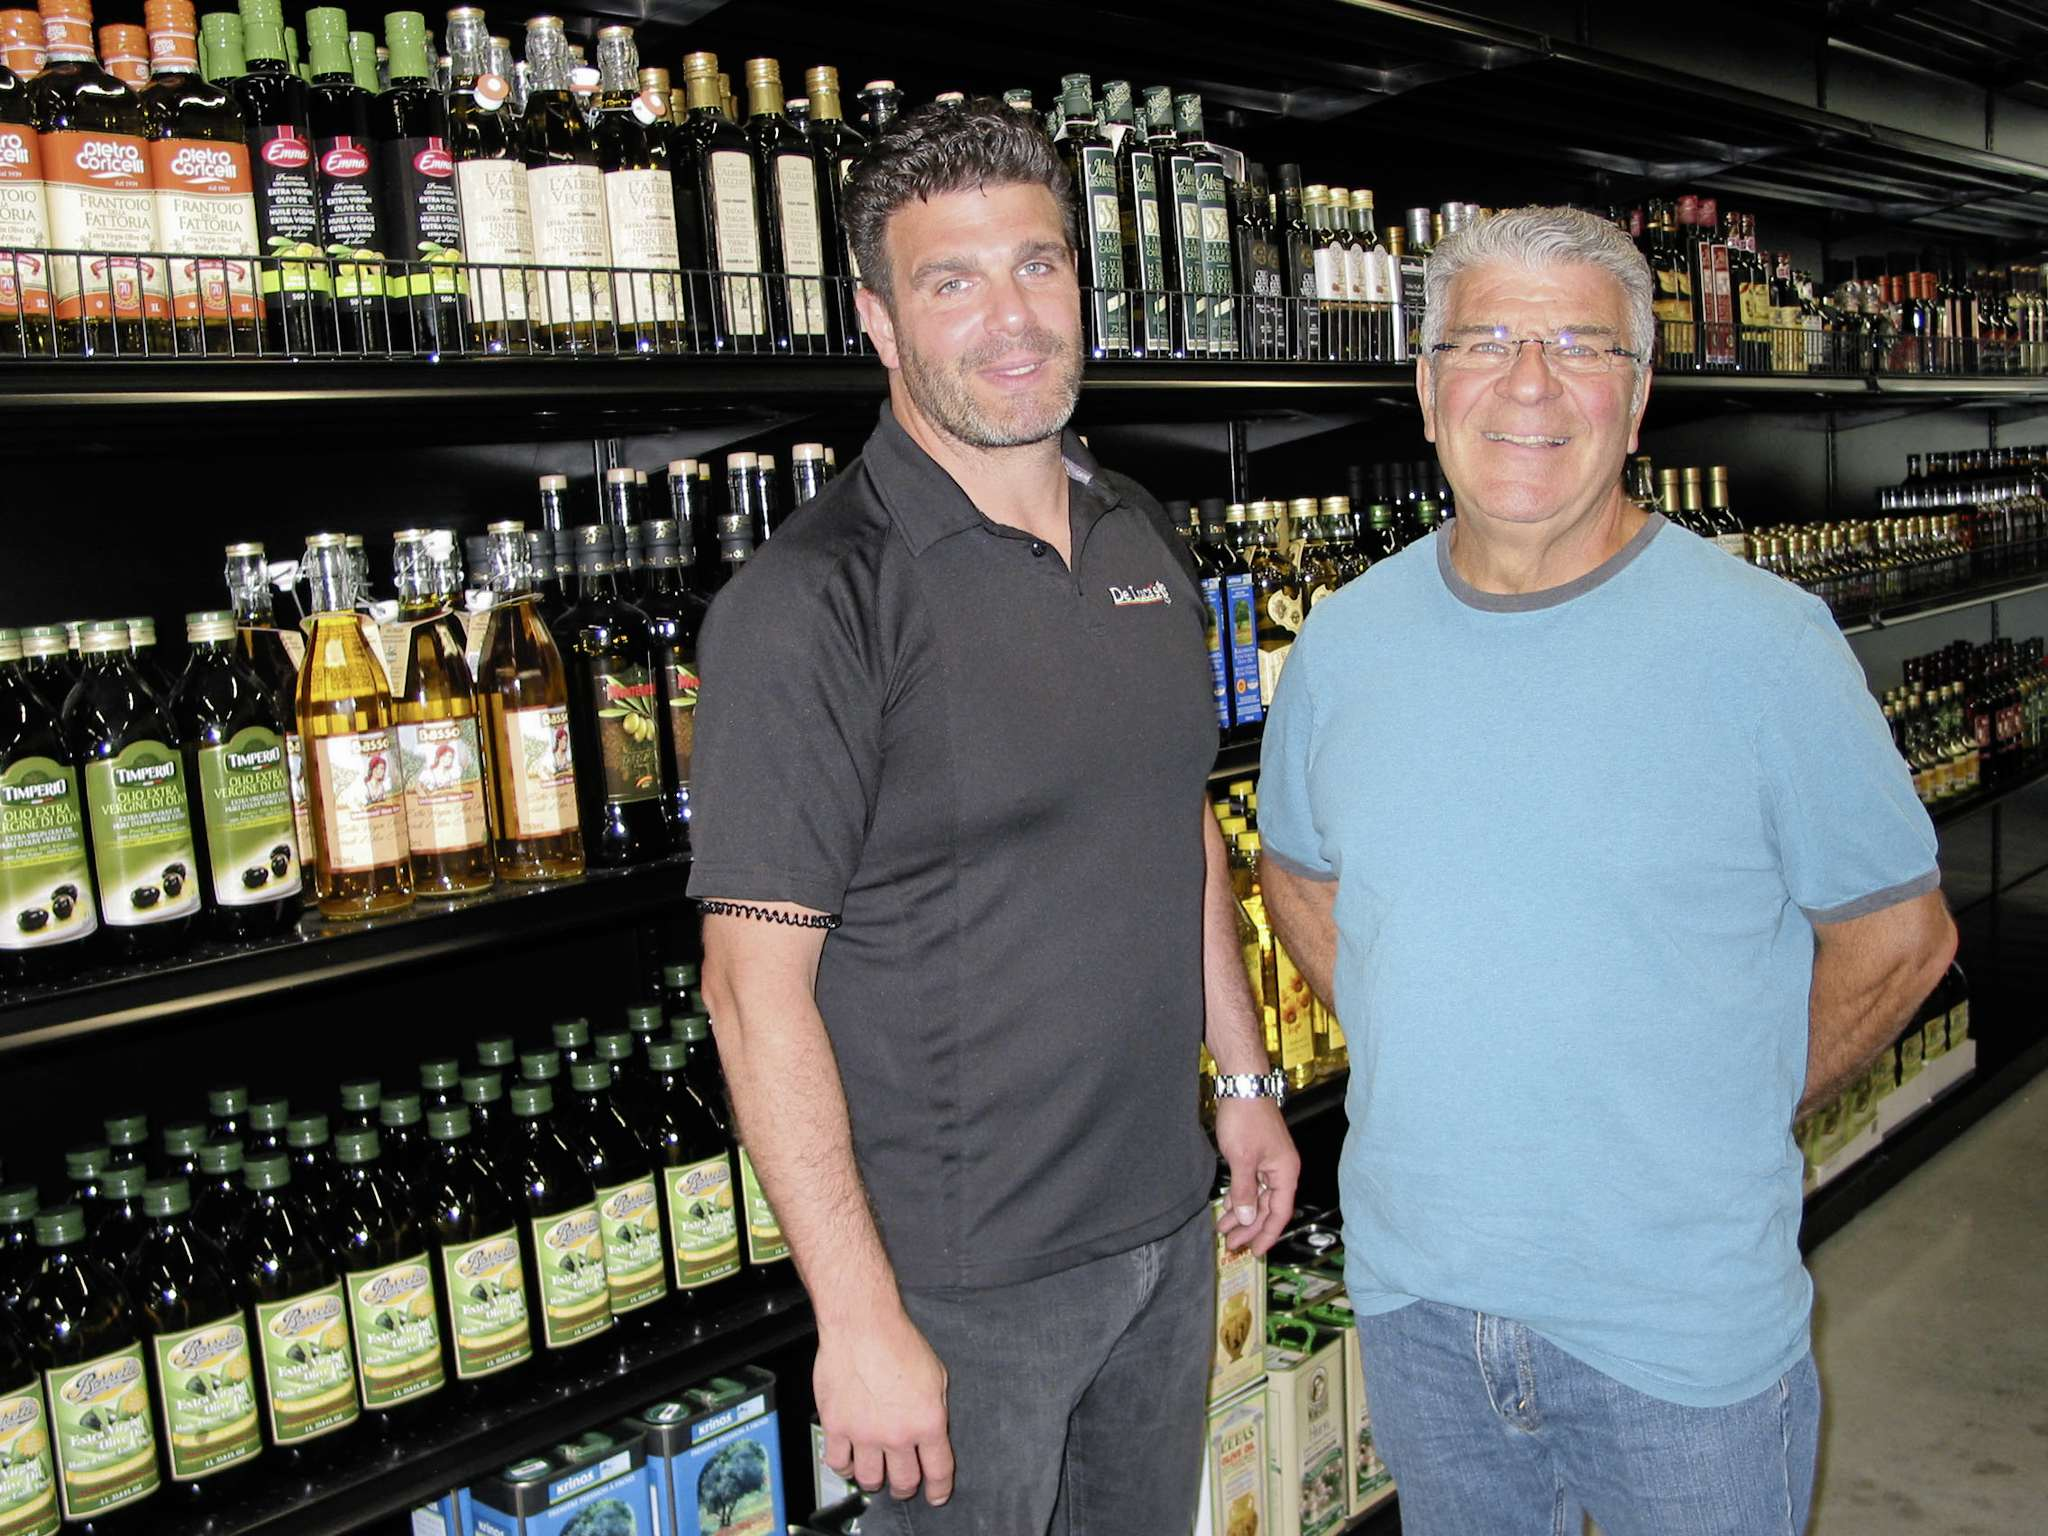 (From left) Marco De Luca and his father Peter stand next to the shelves holding the wide variety of oils available at the company's new location at 66 South Landing in the RM of Macdonald.